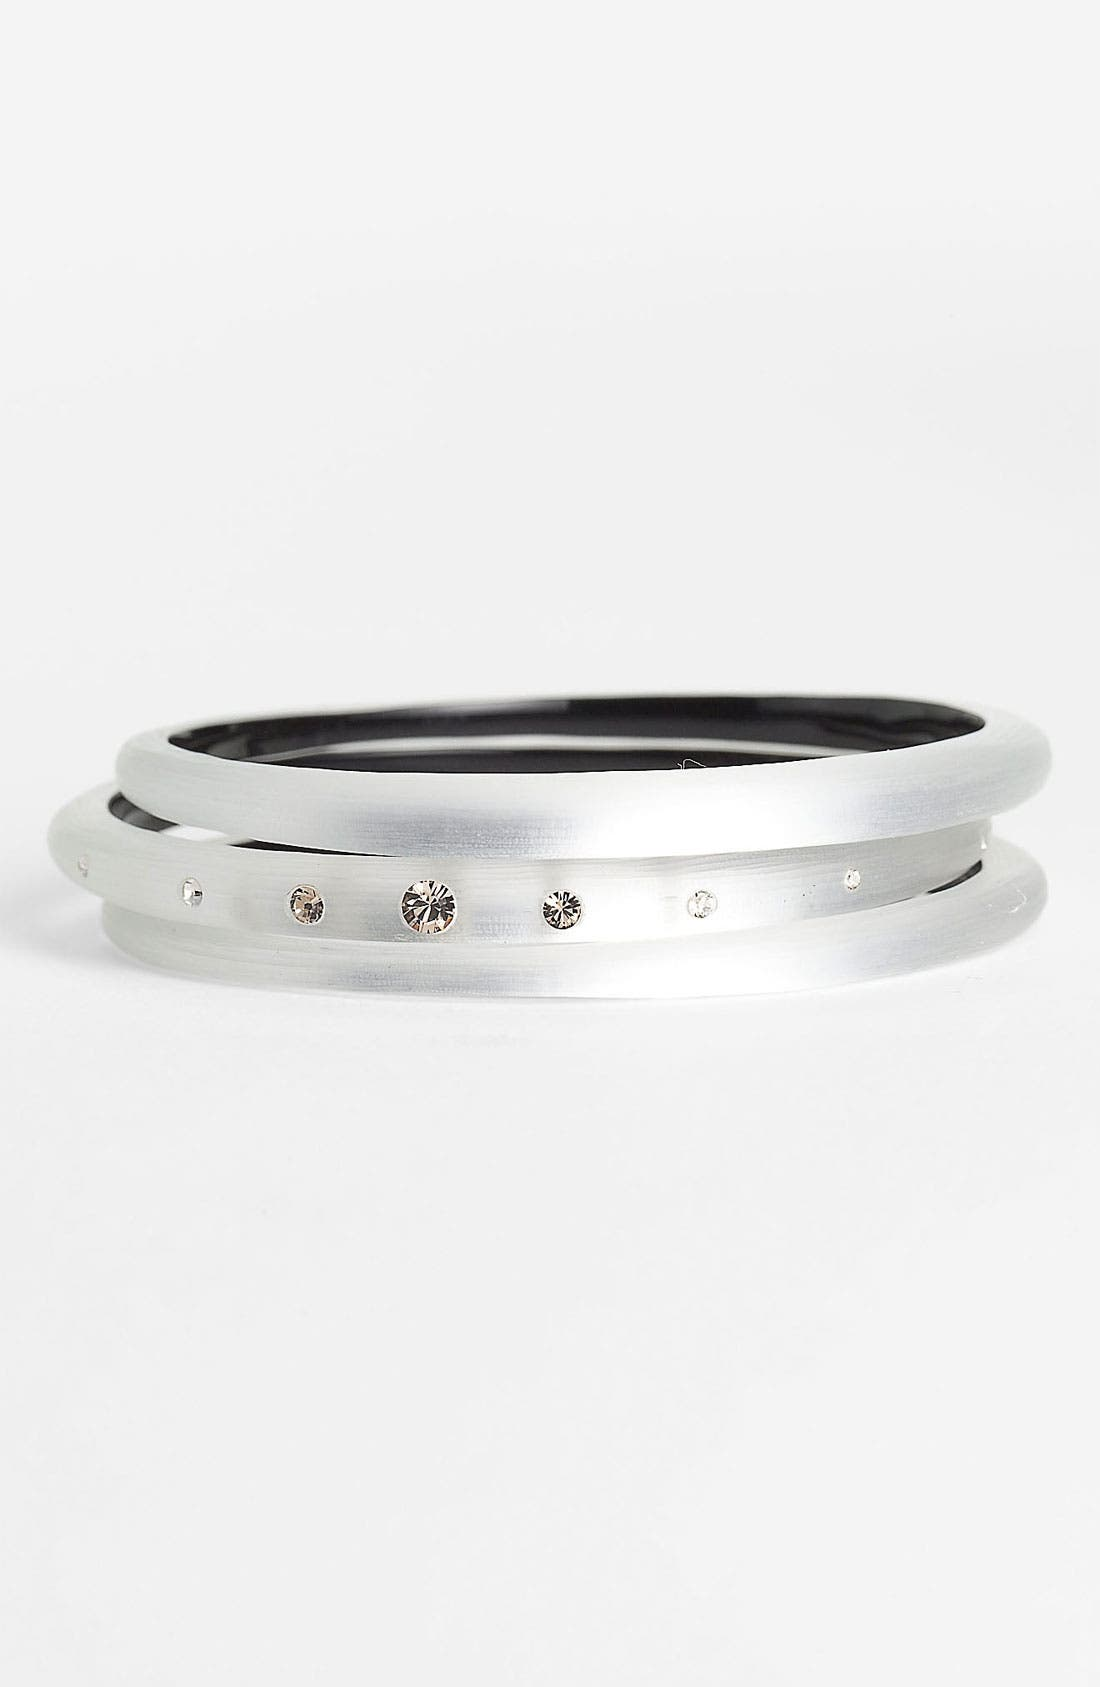 Alternate Image 1 Selected - Alexis Bittar Skinny Tapered Bangles (Set of 3) (Nordstrom Exclusive)